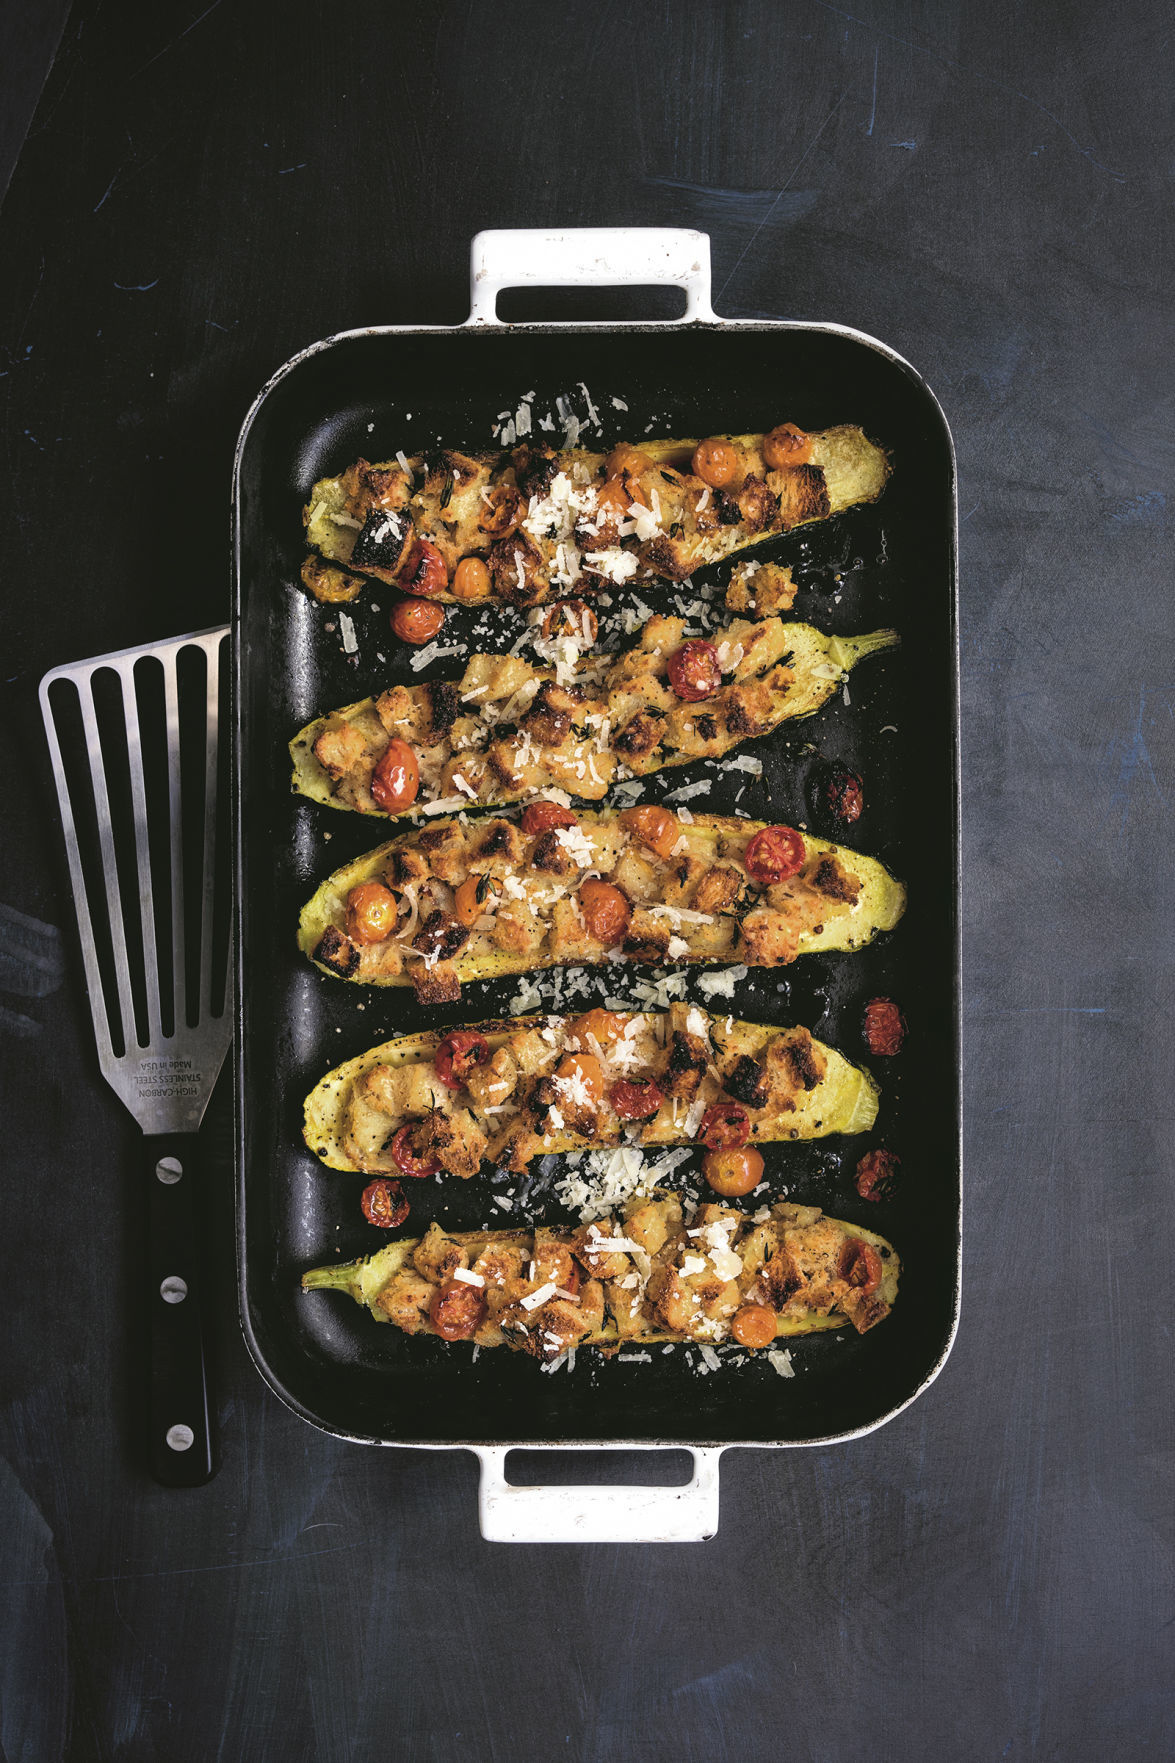 Zucchini stuffed with bread crumbs and tomatoes